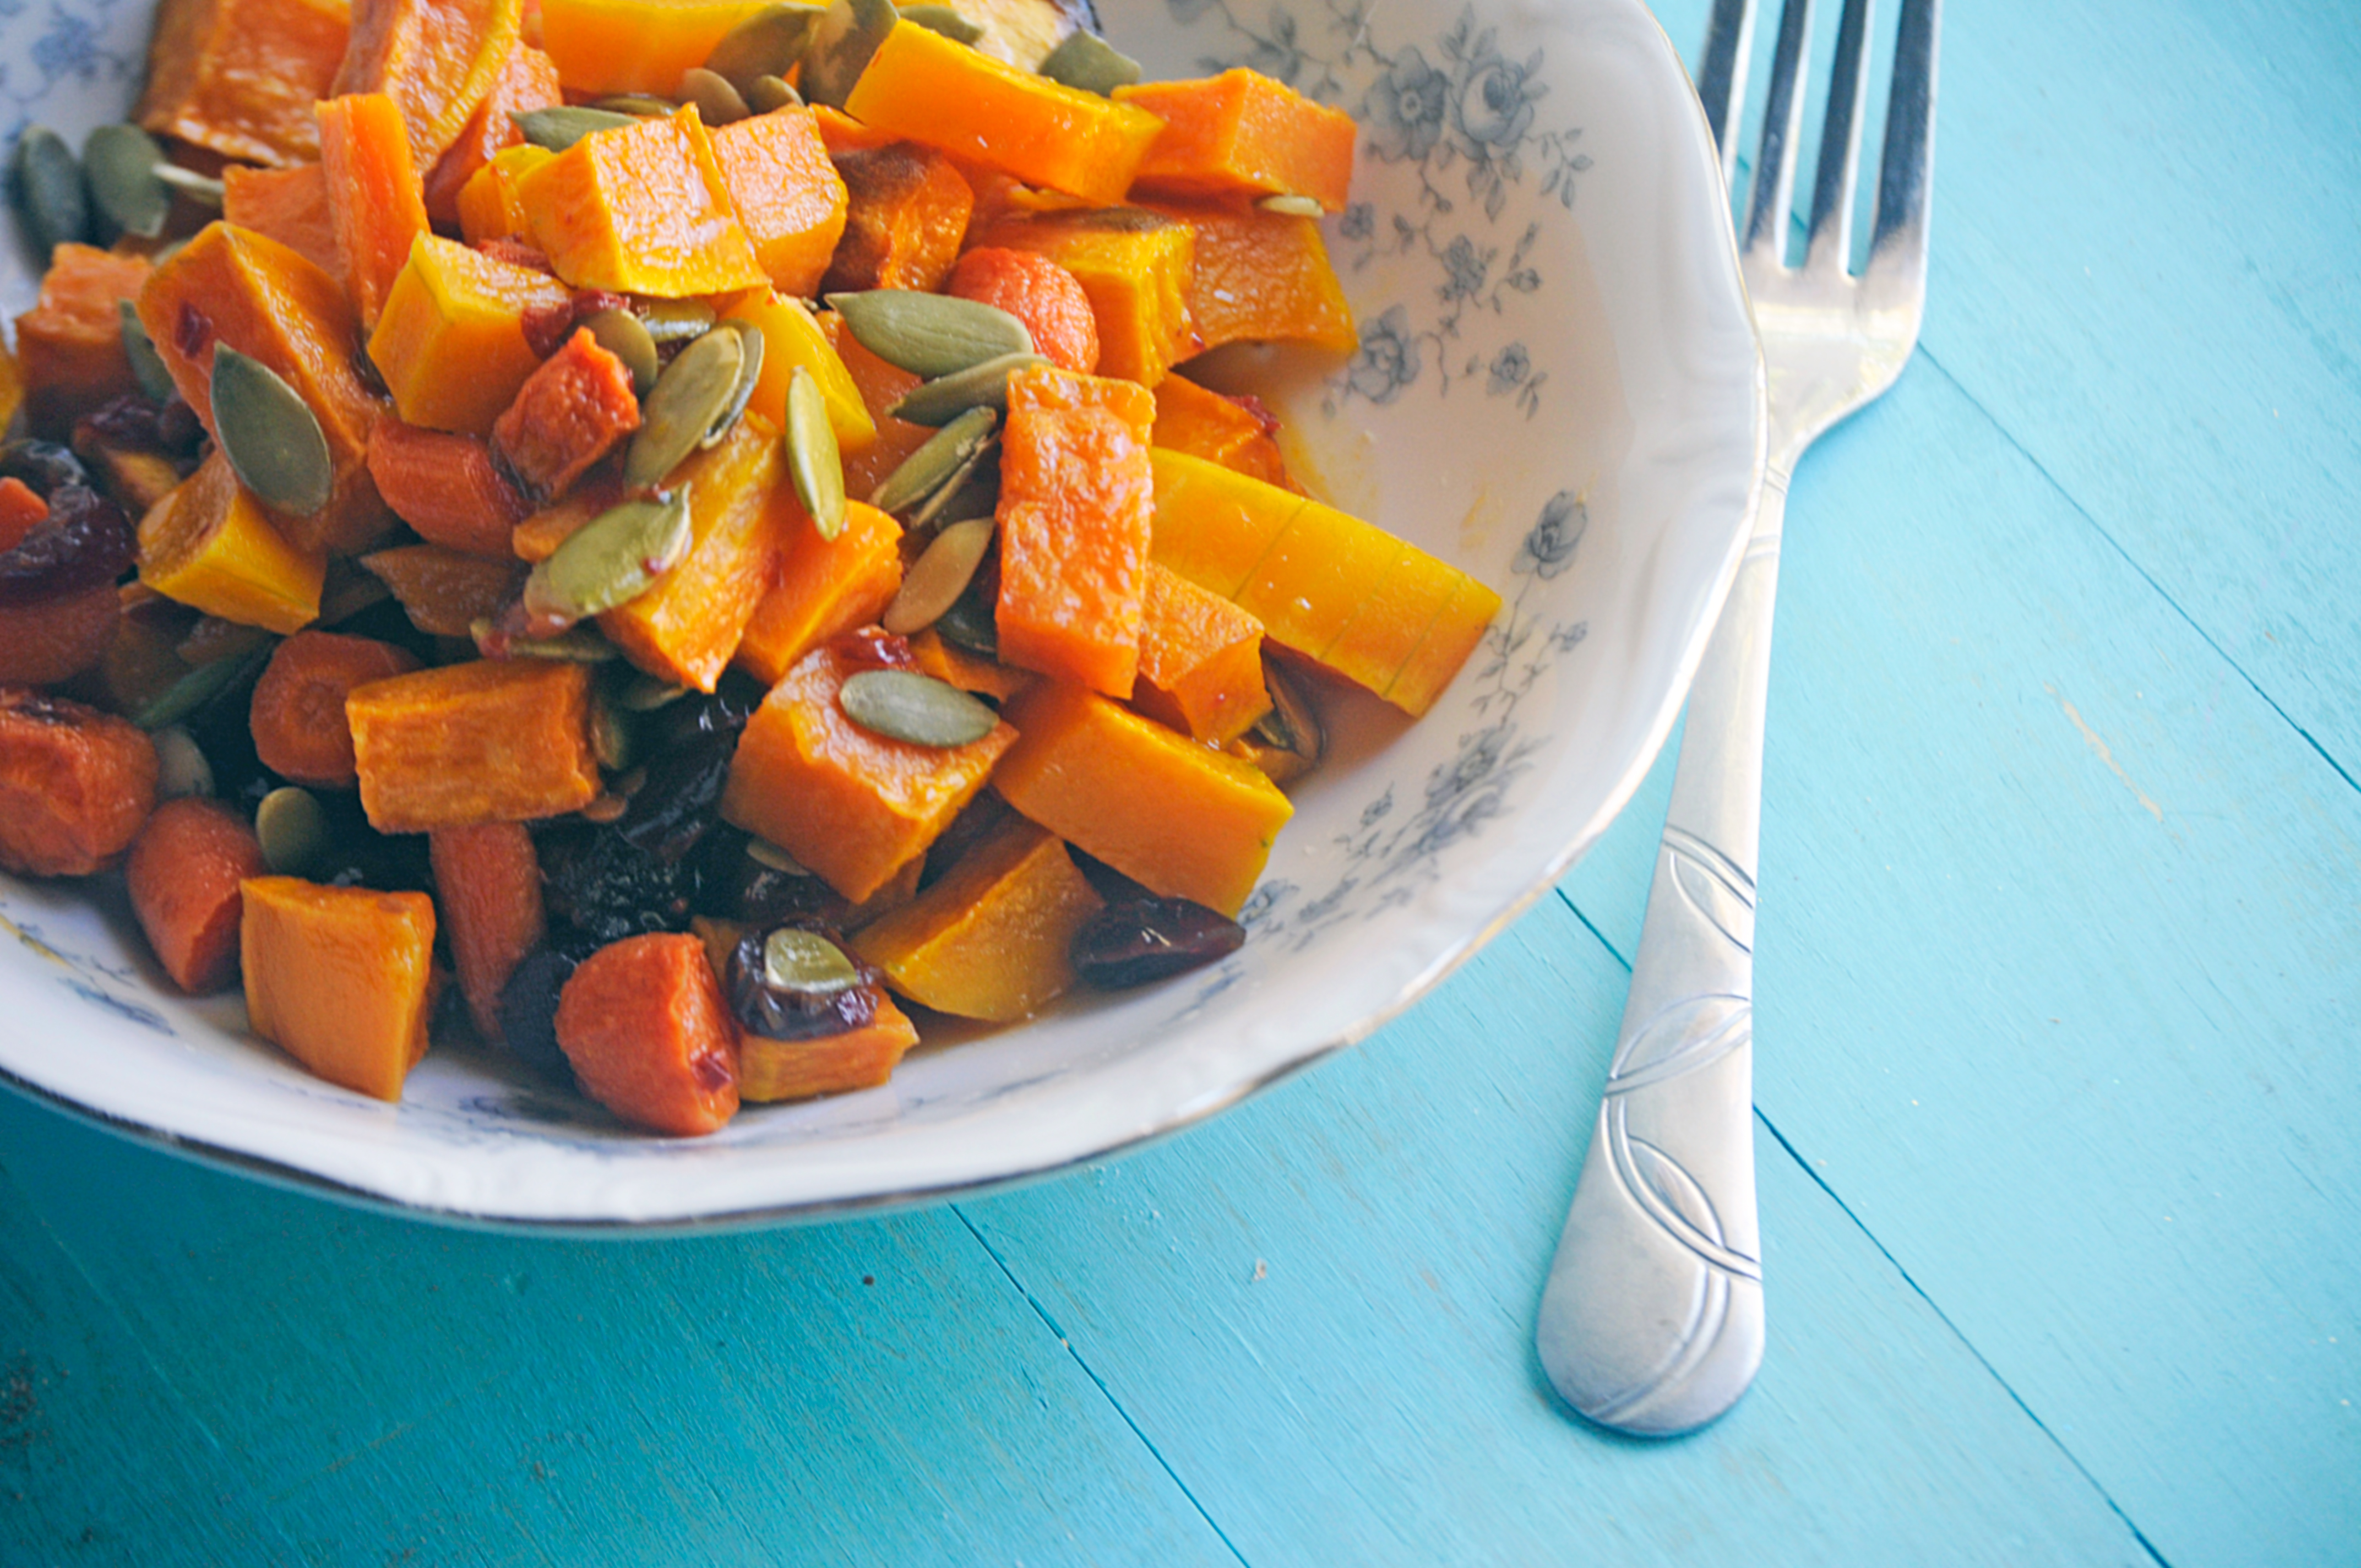 Roasted Fall Veggie Salad with Orange Chipotle Dressing